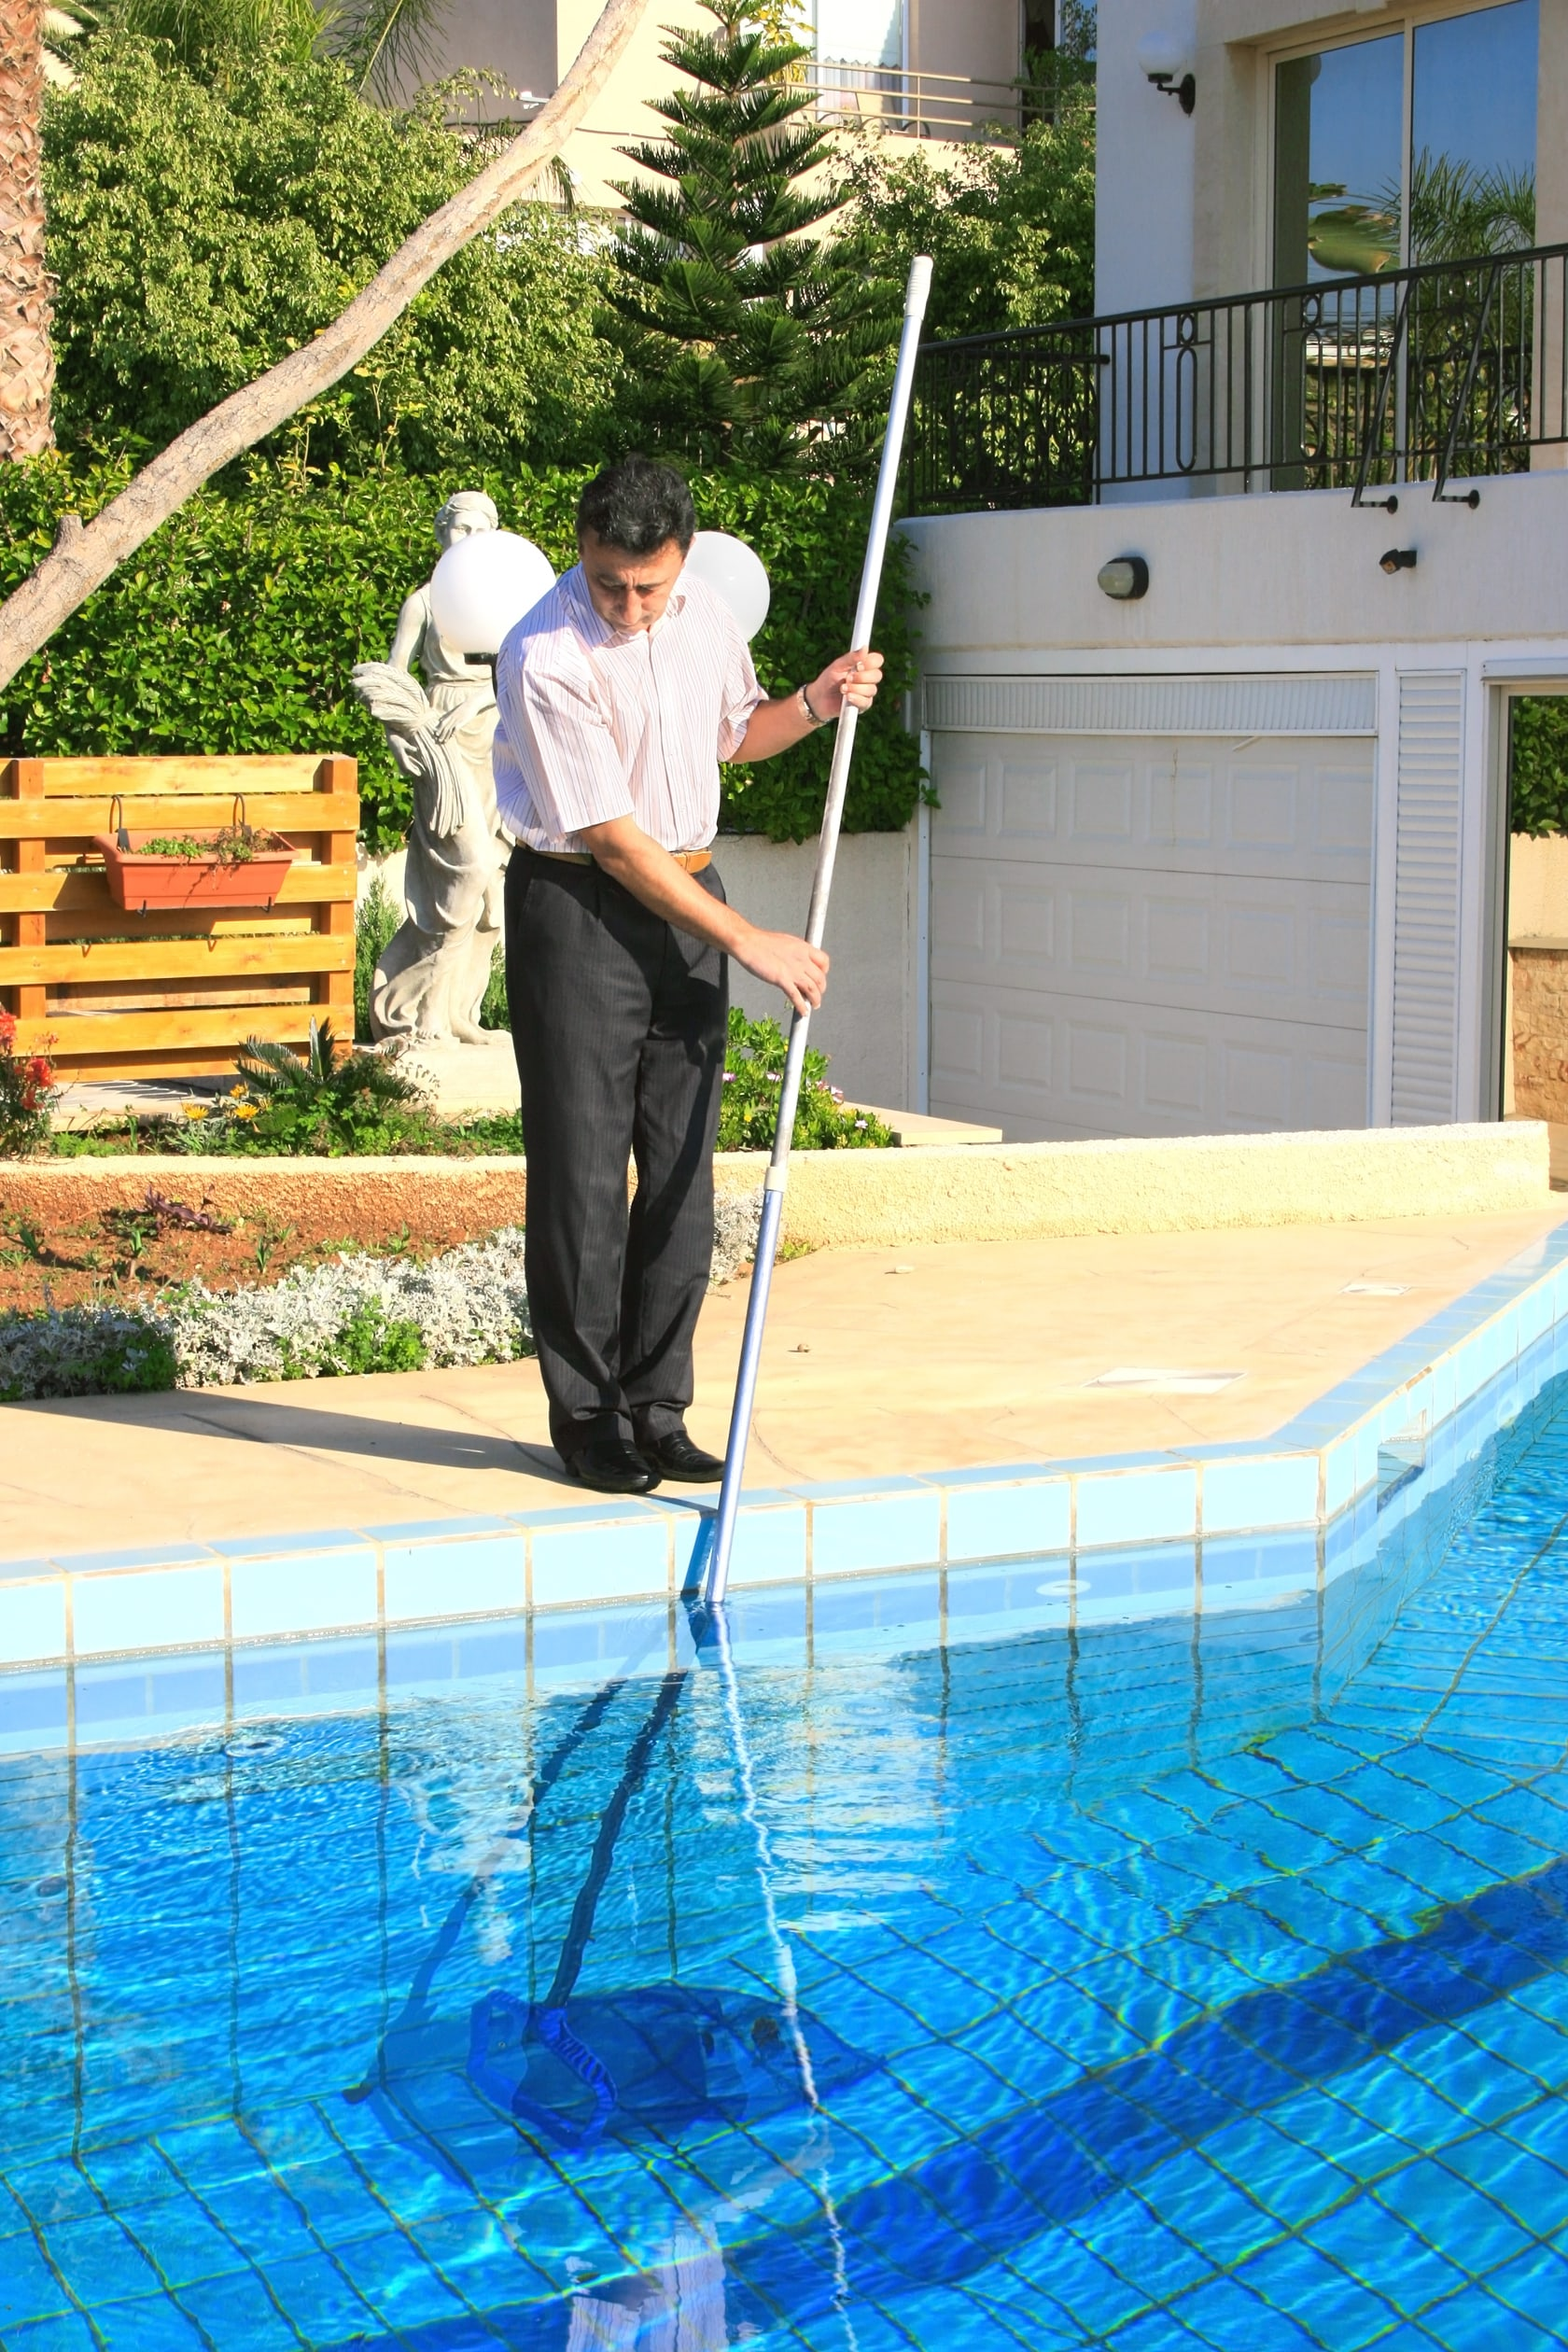 Pool maintenance 101 how to clean a pool in 5 easy steps for Swimming pool maintenance checklist